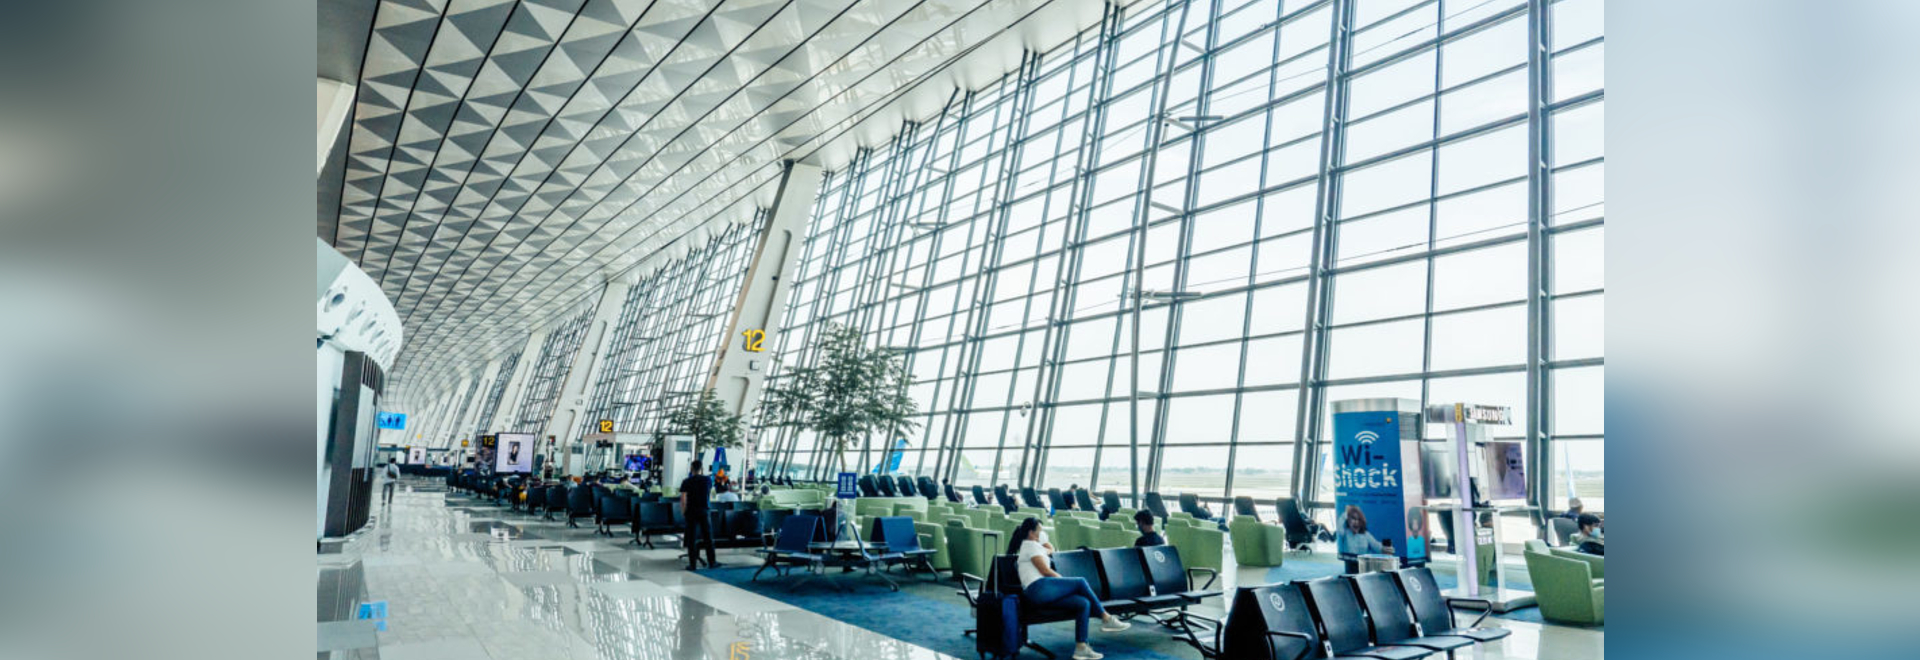 What are the best airports in the world doing differently?